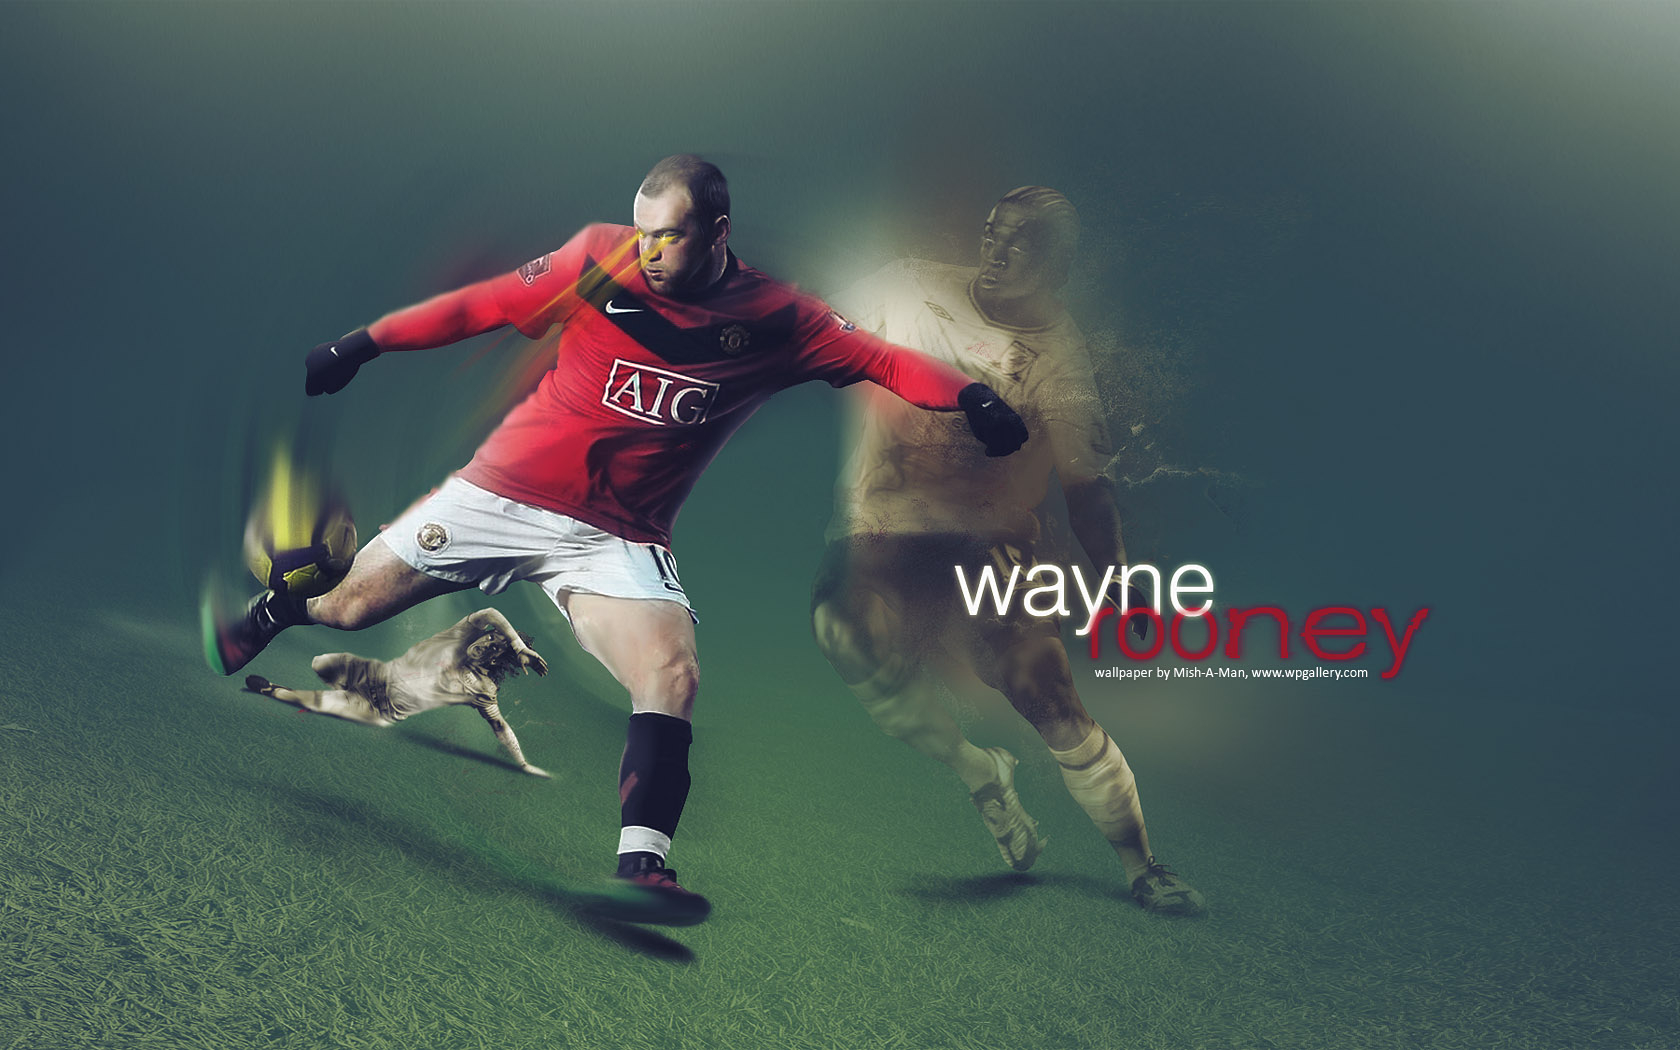 Wayne Rooney by Mish-A-Man